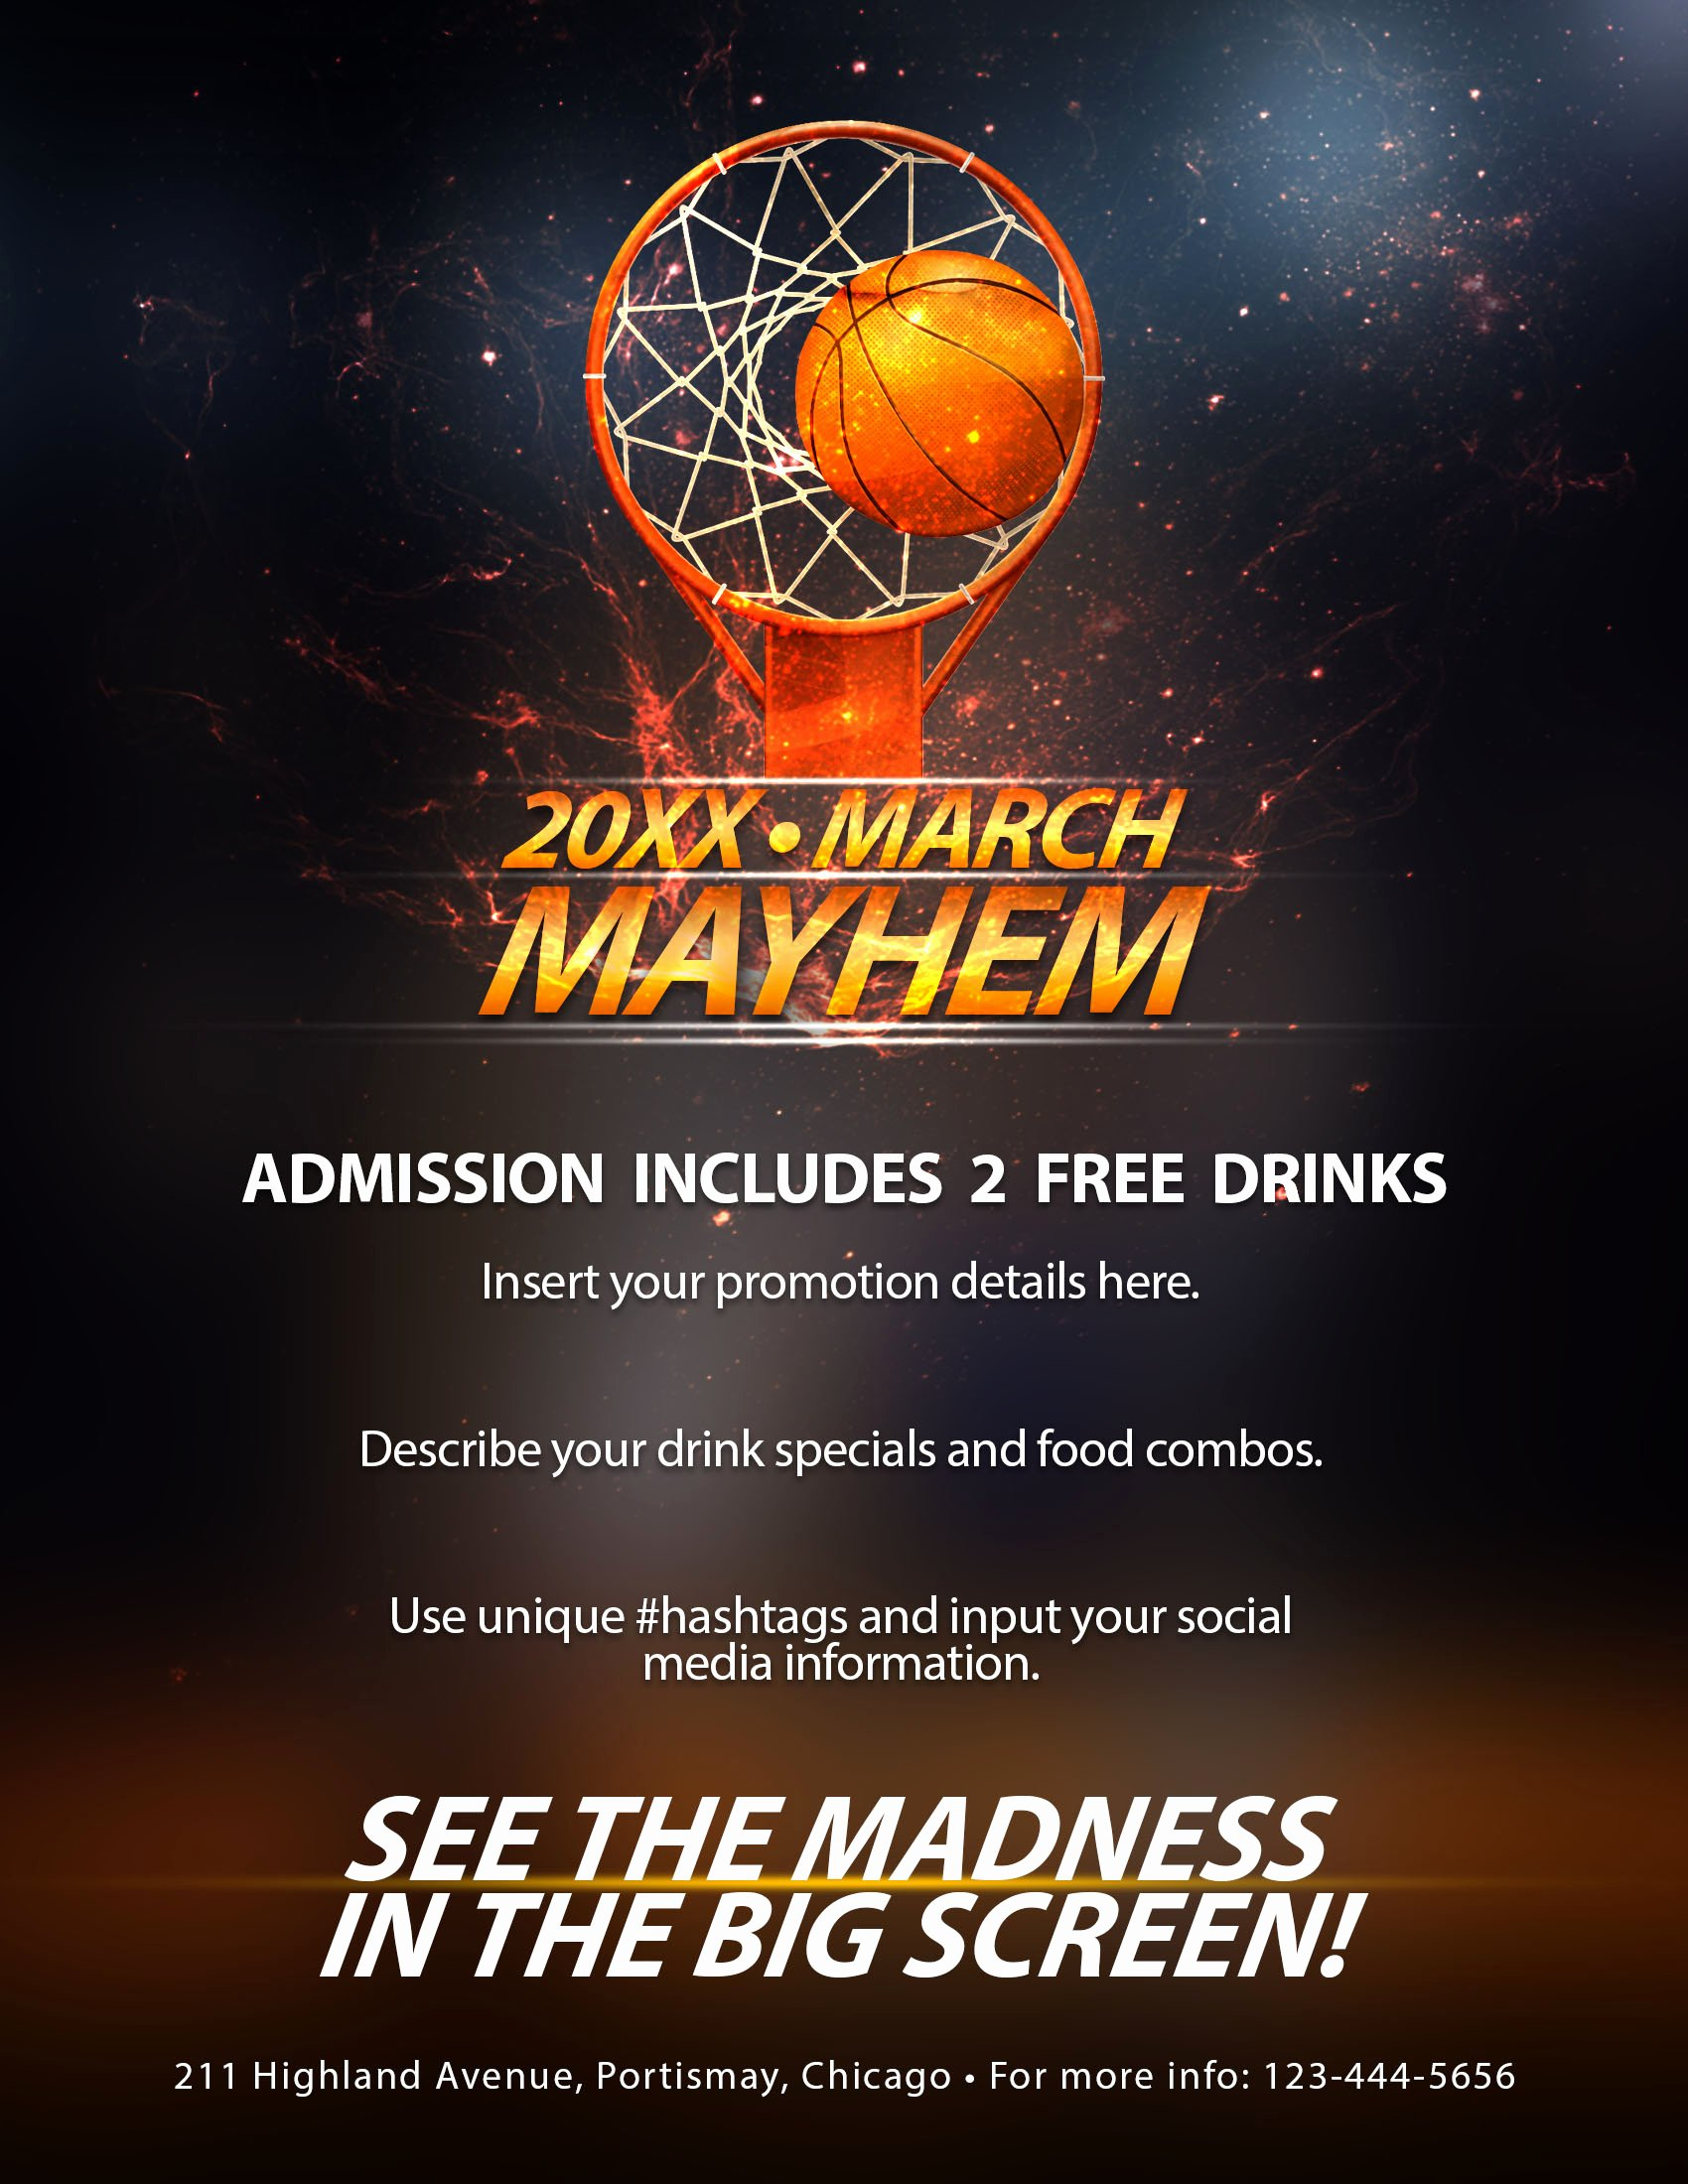 Basketball tournament Flyer Template Luxury the Madness Begins Free 5 Basketball Flyers In Psd for the Big tournament